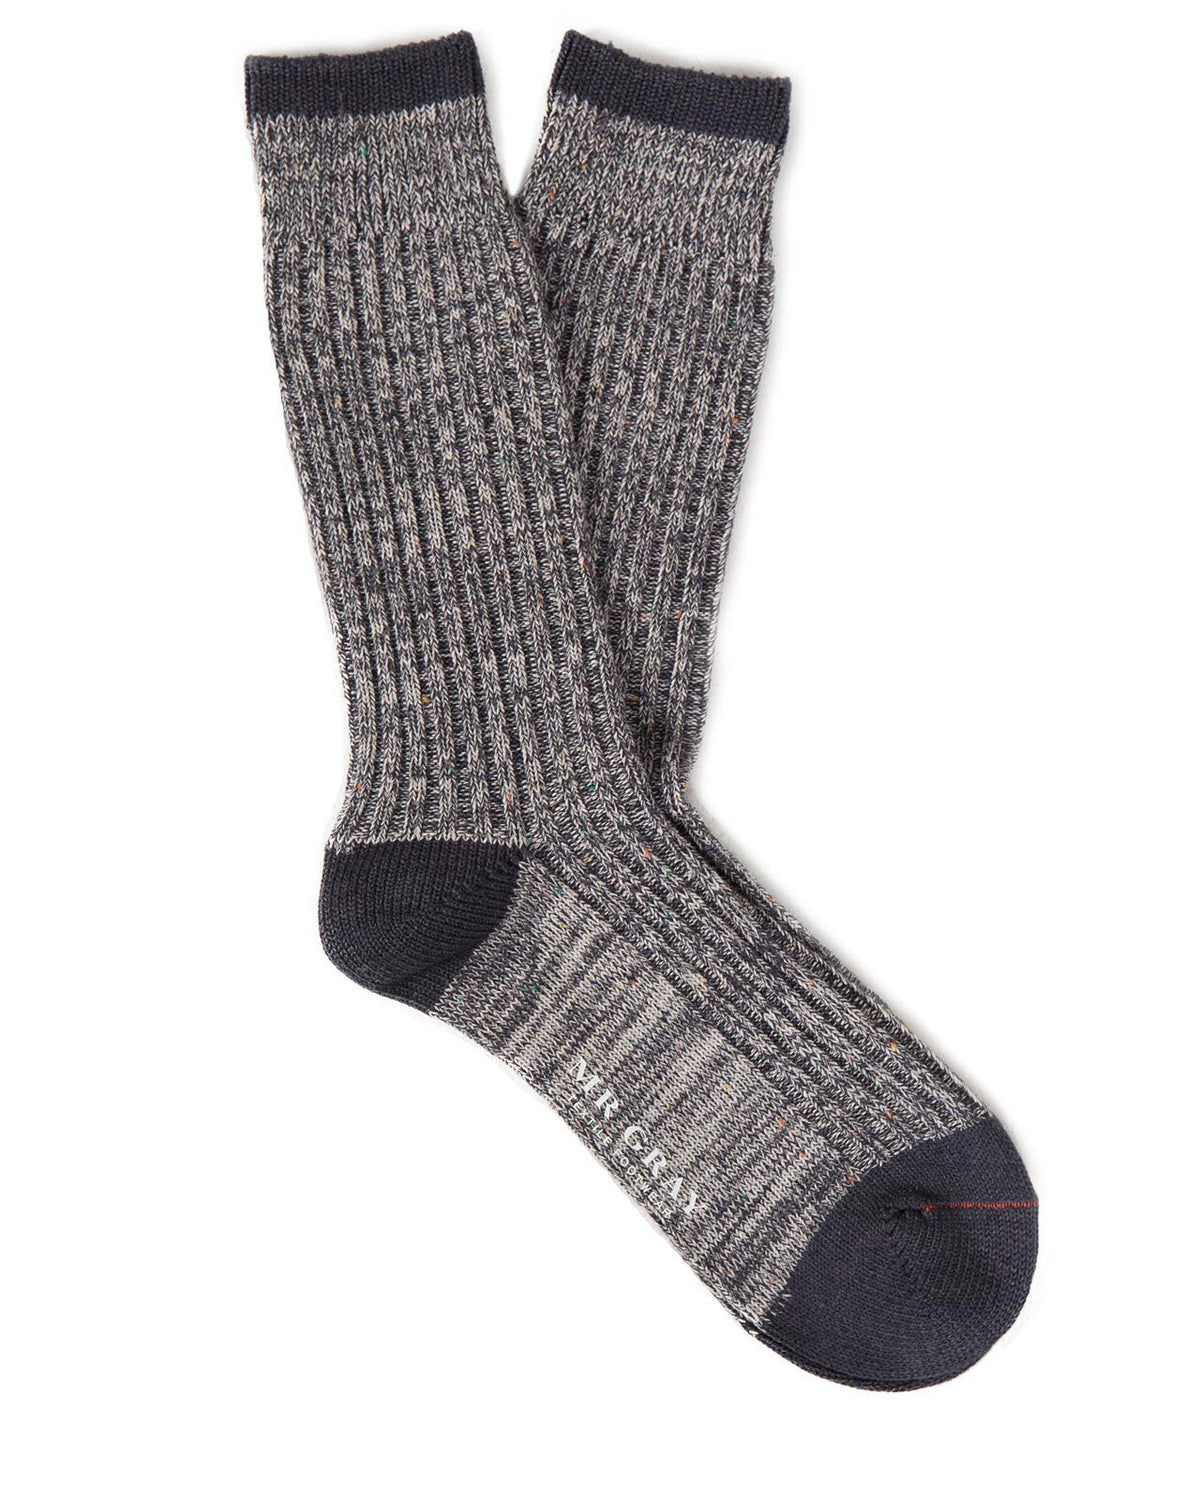 Heavy Nep Rib Sock in Charcoal